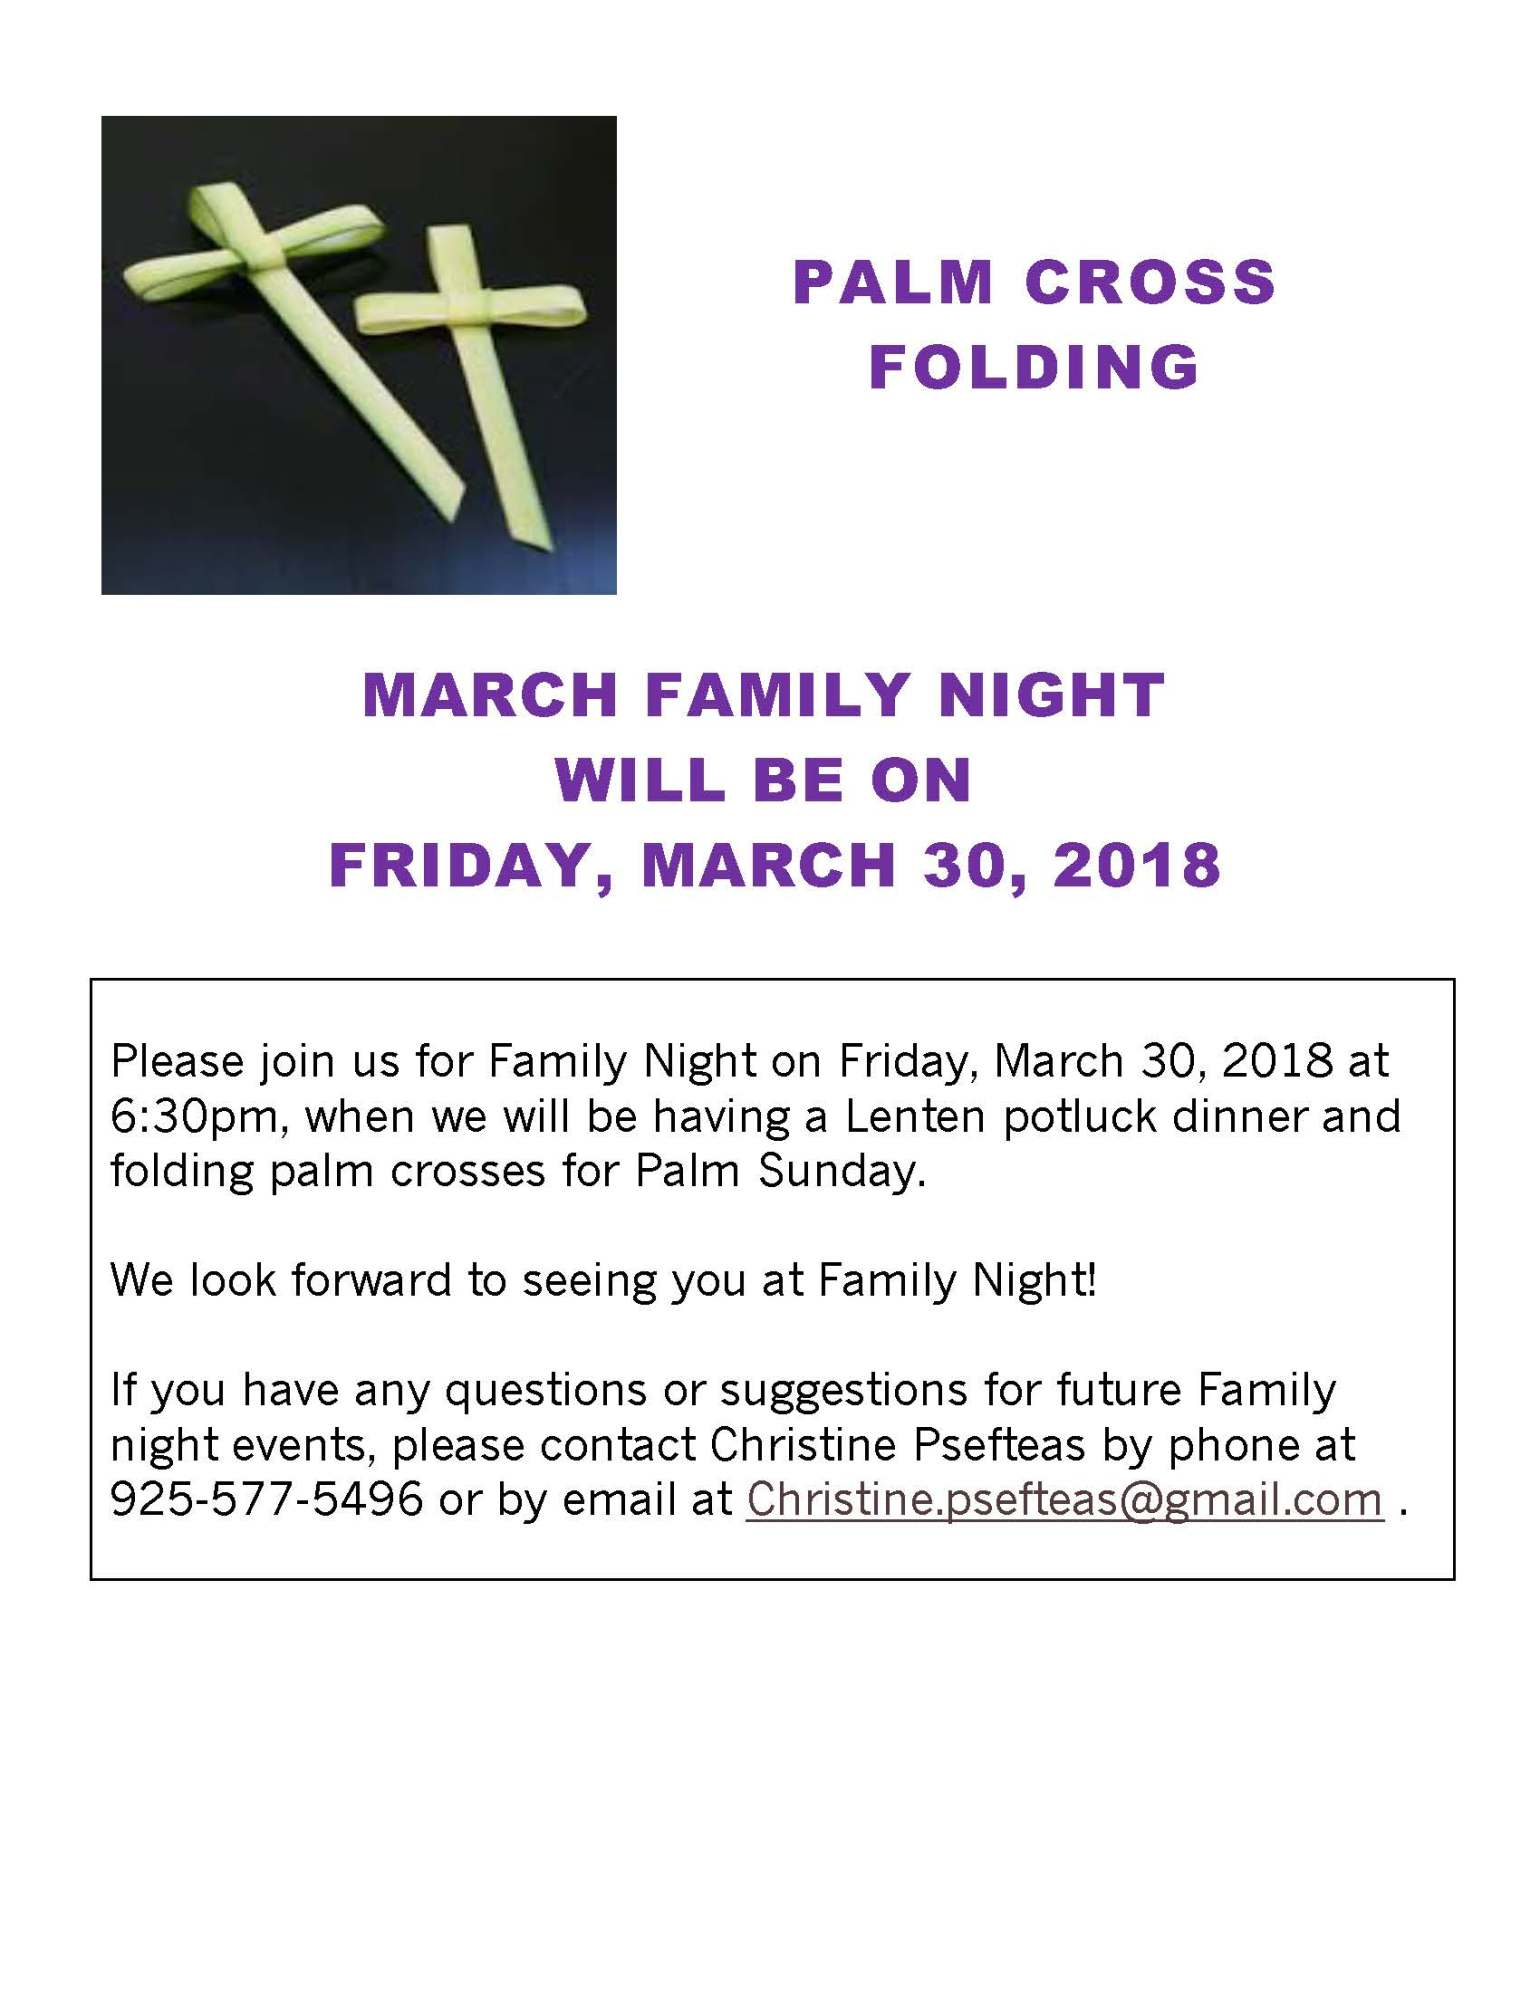 2018 Palm Folding Family Night Flyer